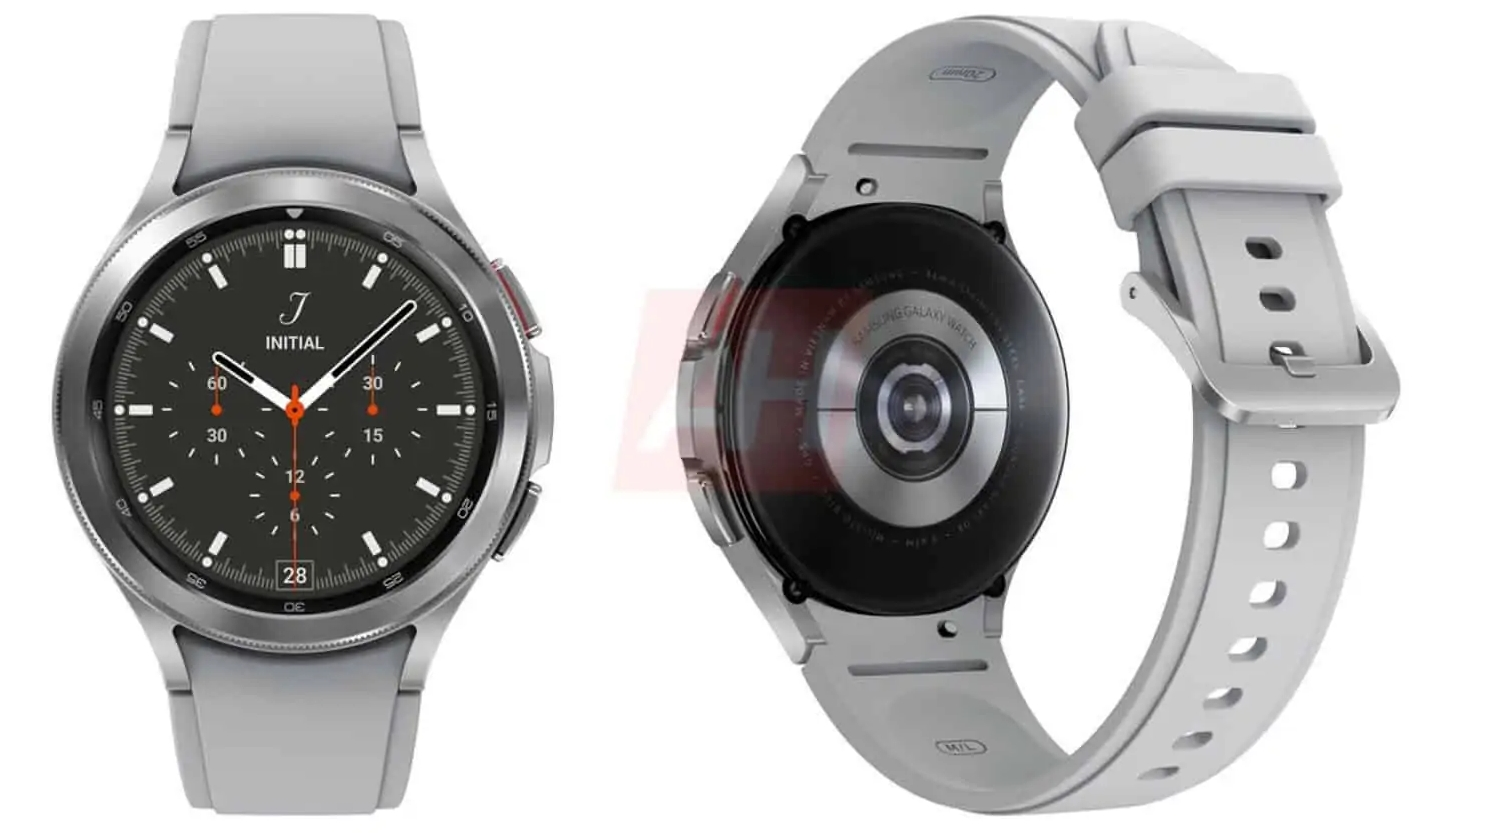 Leaked Samsung Galaxy Watch 4 Classic render showing it in grey